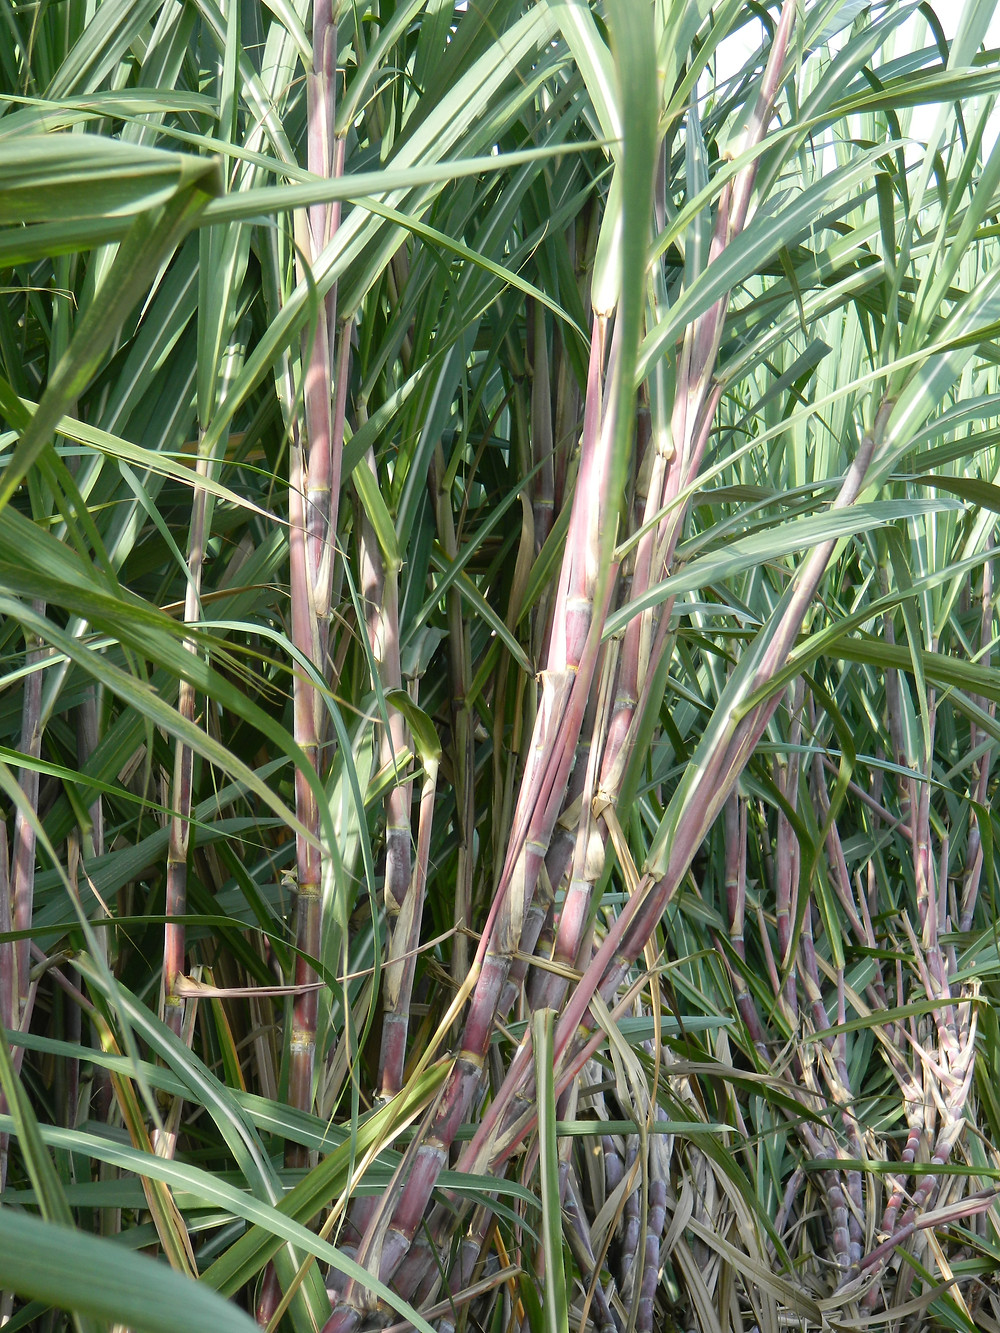 Close-up of the sugarcane crop